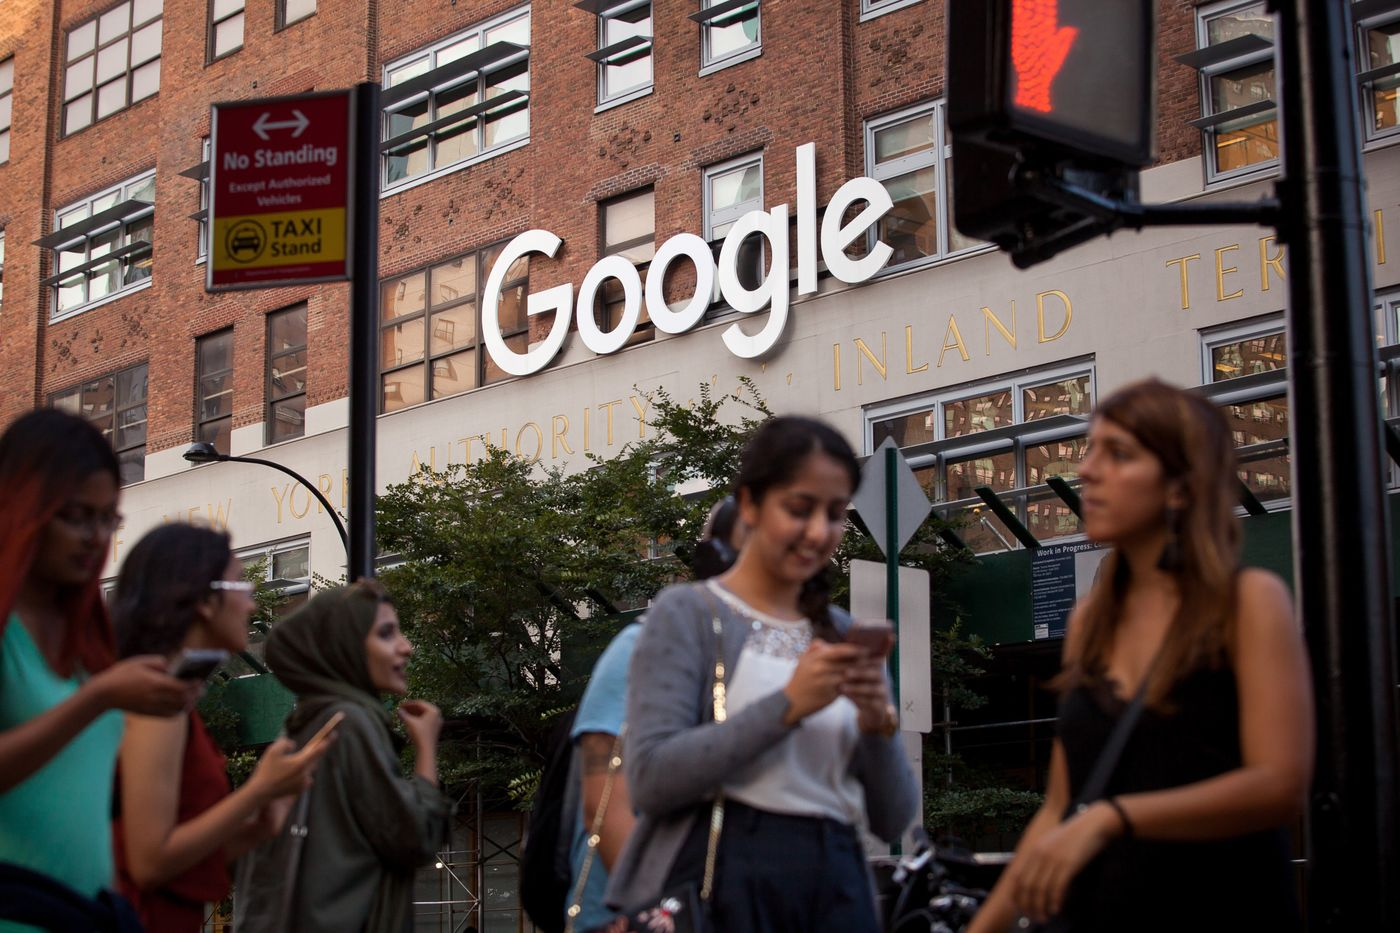 Pedestrians walk past the Google Inc. offices in New York, U.S.